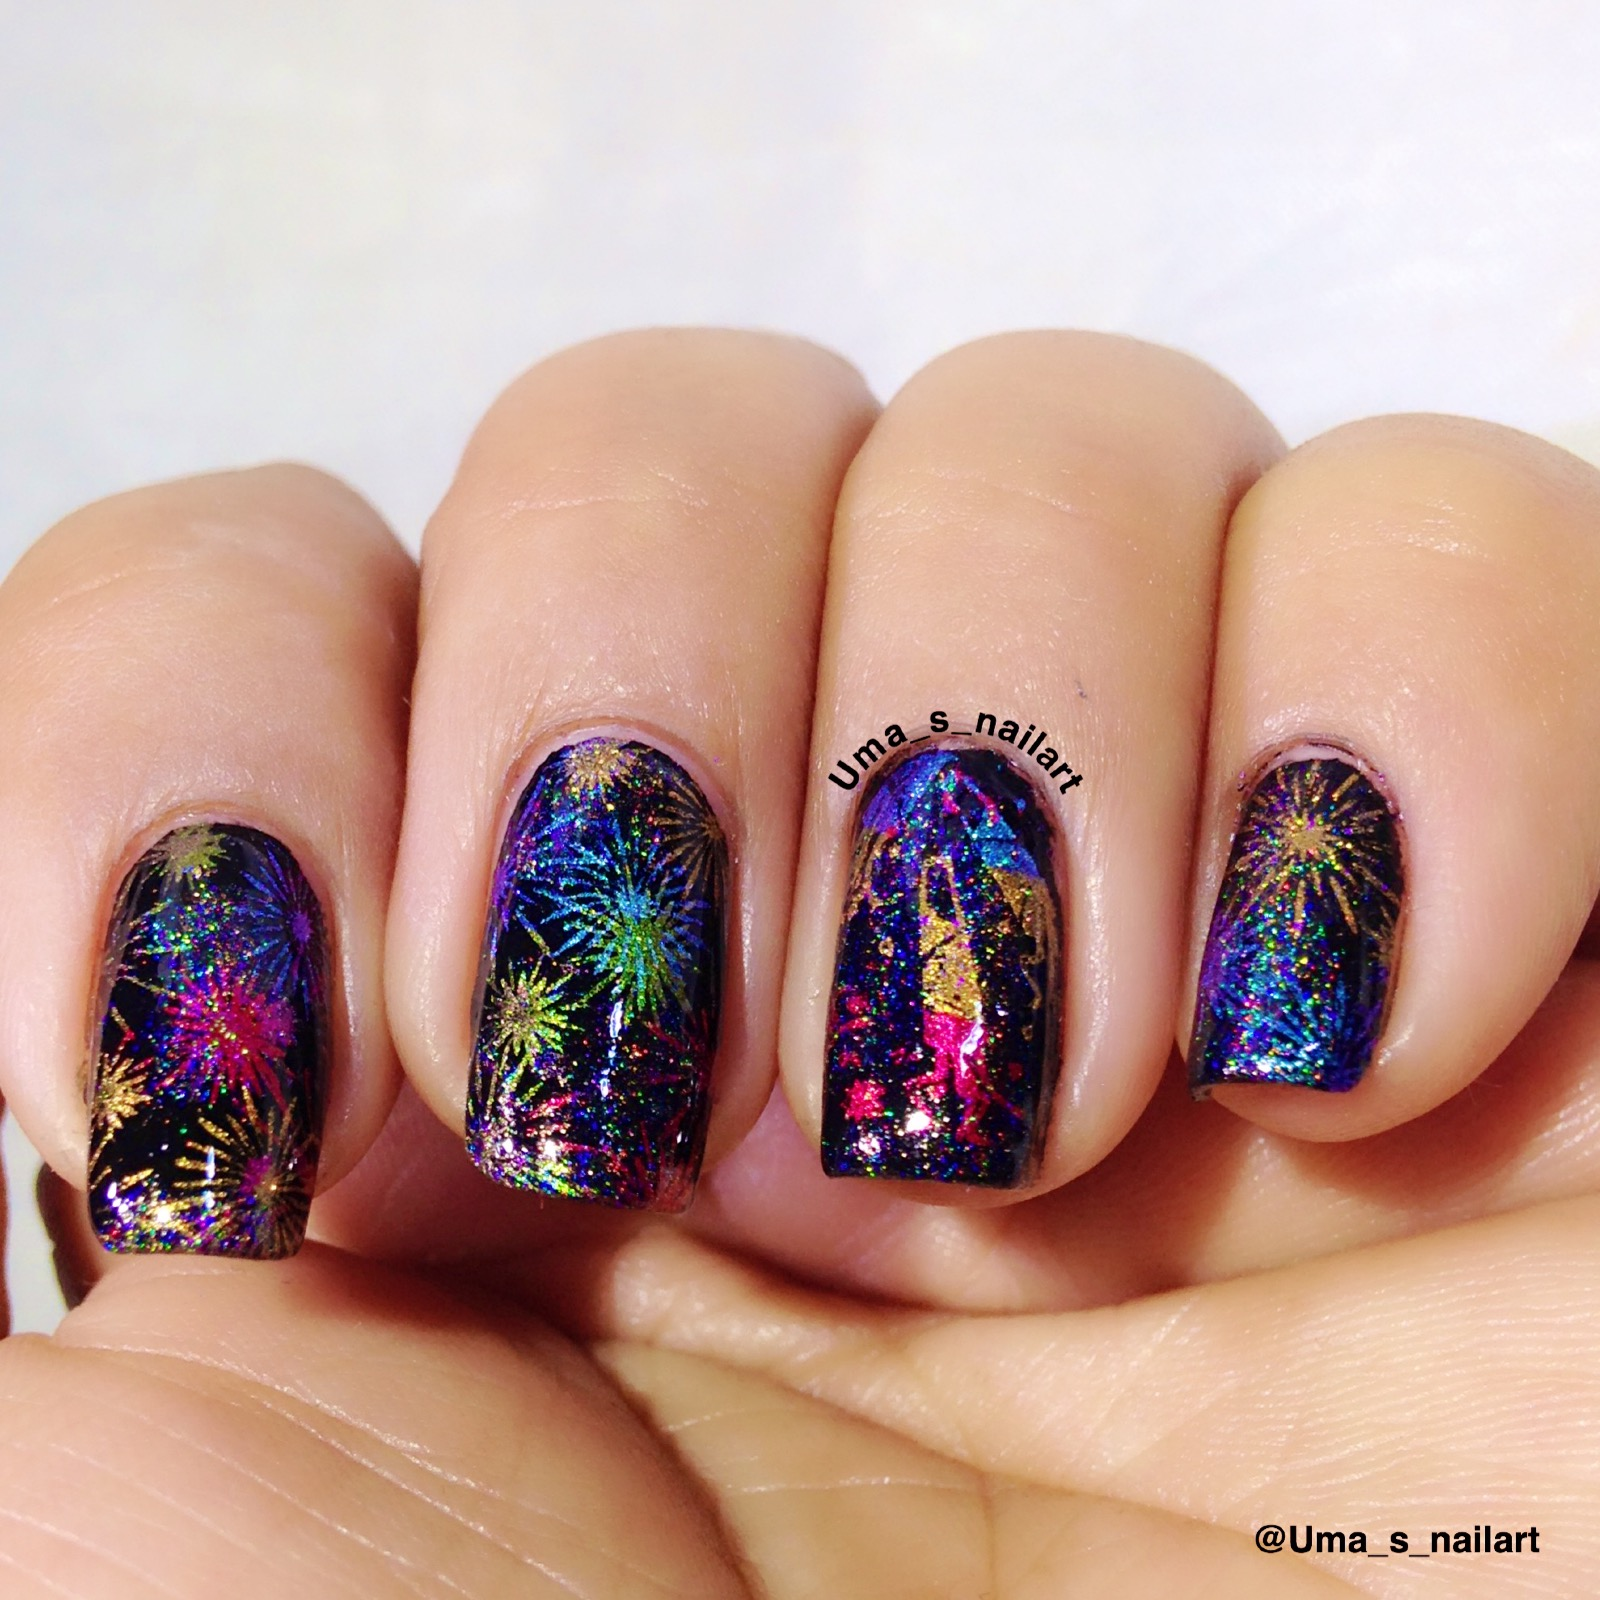 Umas nail art fireworks nails the black polish for the base is dance legend margarita stamping polishes are el corazon chrome polish 232728 and 32 fireworks and confetti images prinsesfo Gallery